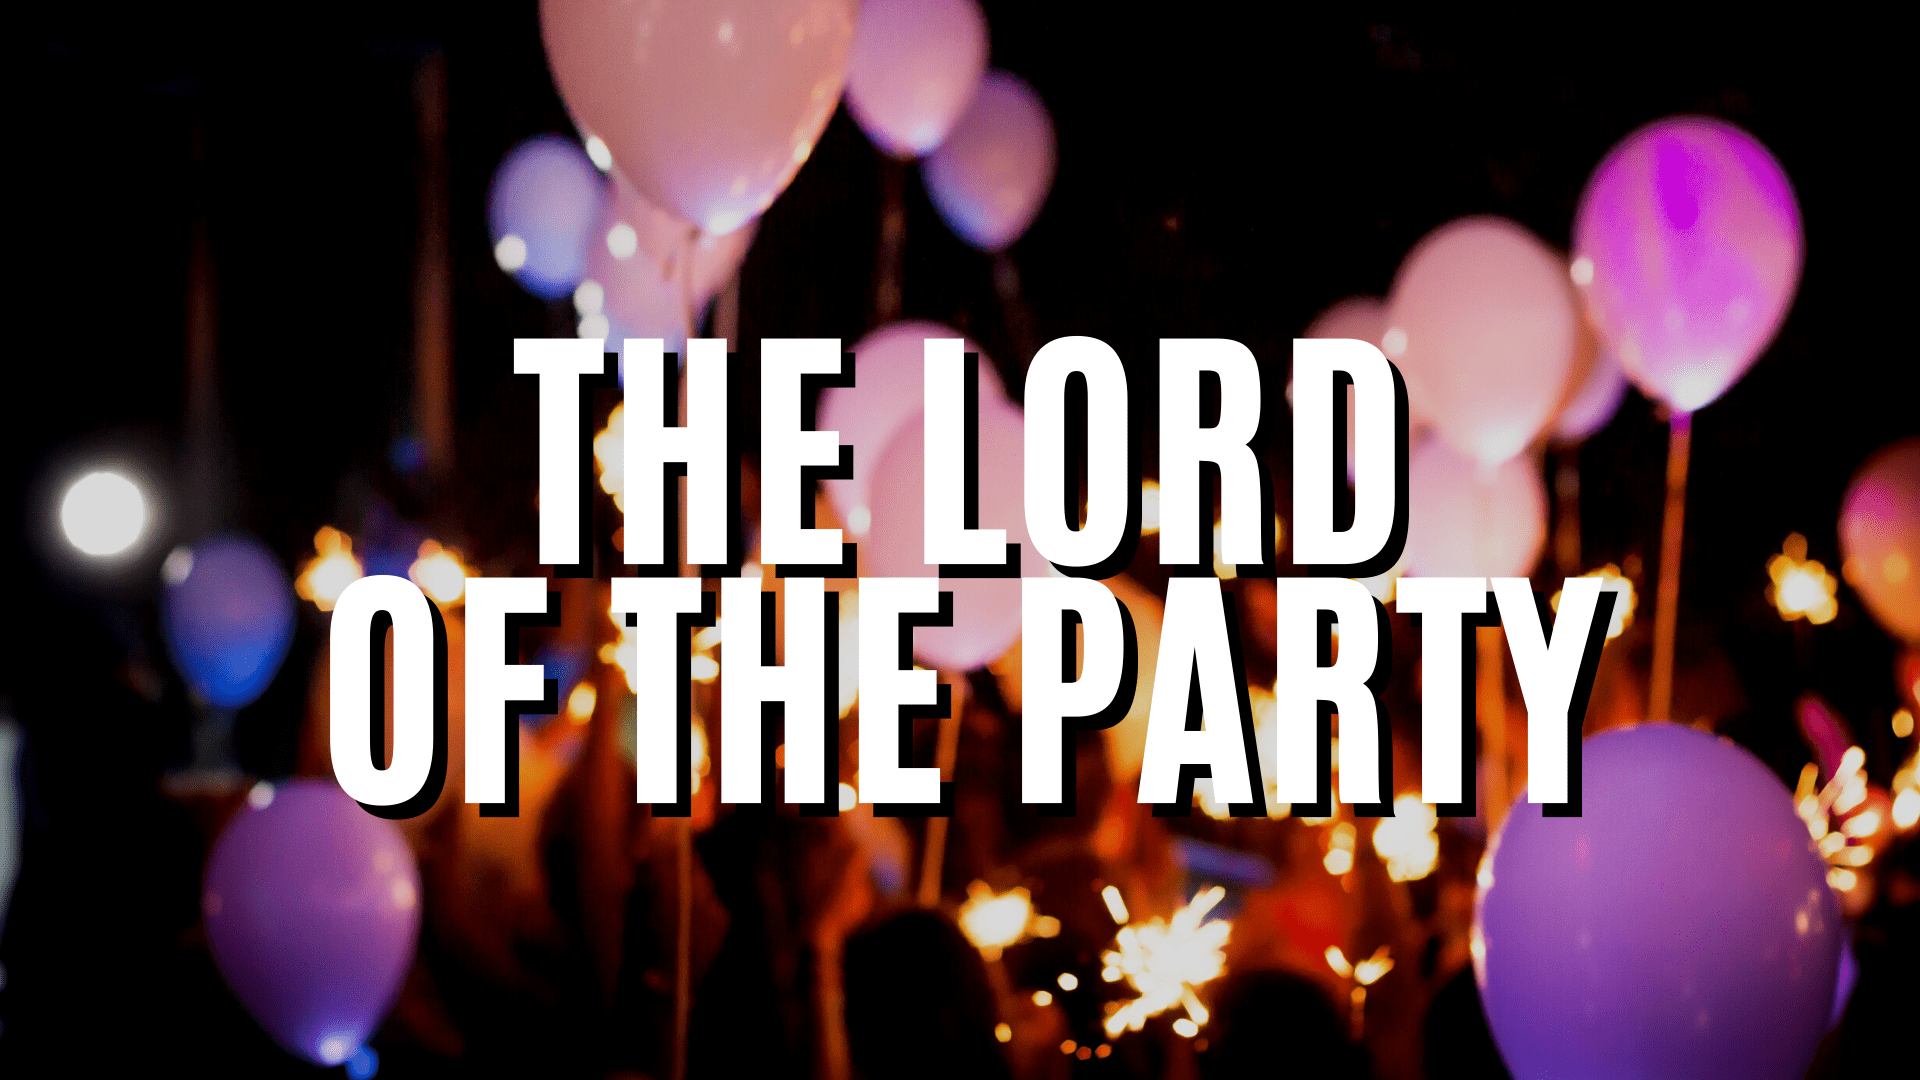 The Lord of the Party